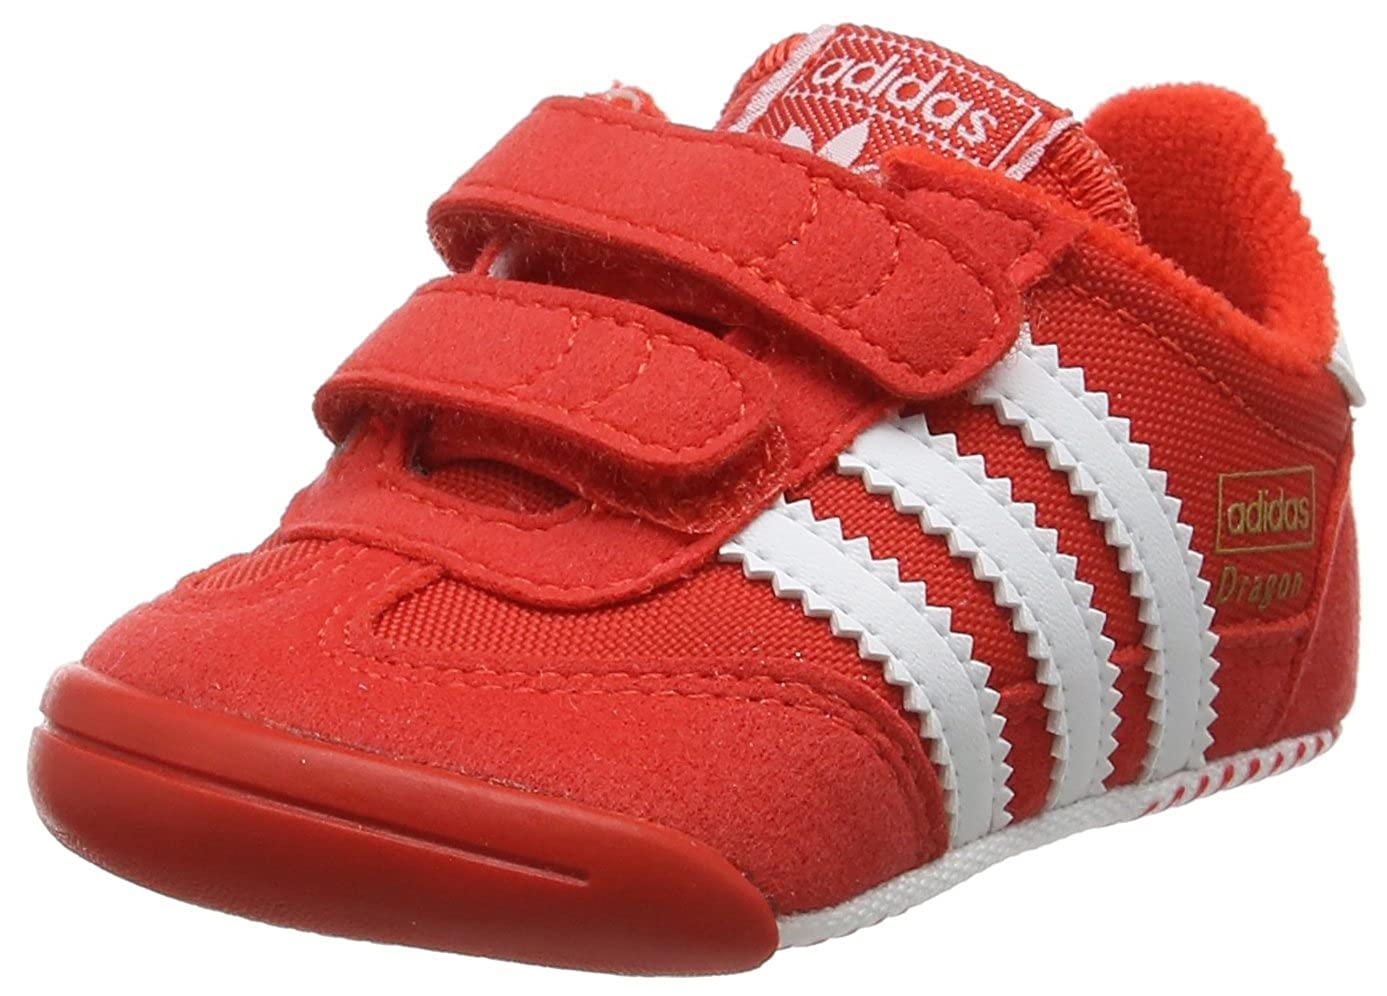 adidas Unisex Babies' Dragon L2w Crib Low-Top Sneakers 6-9 Months BY2377